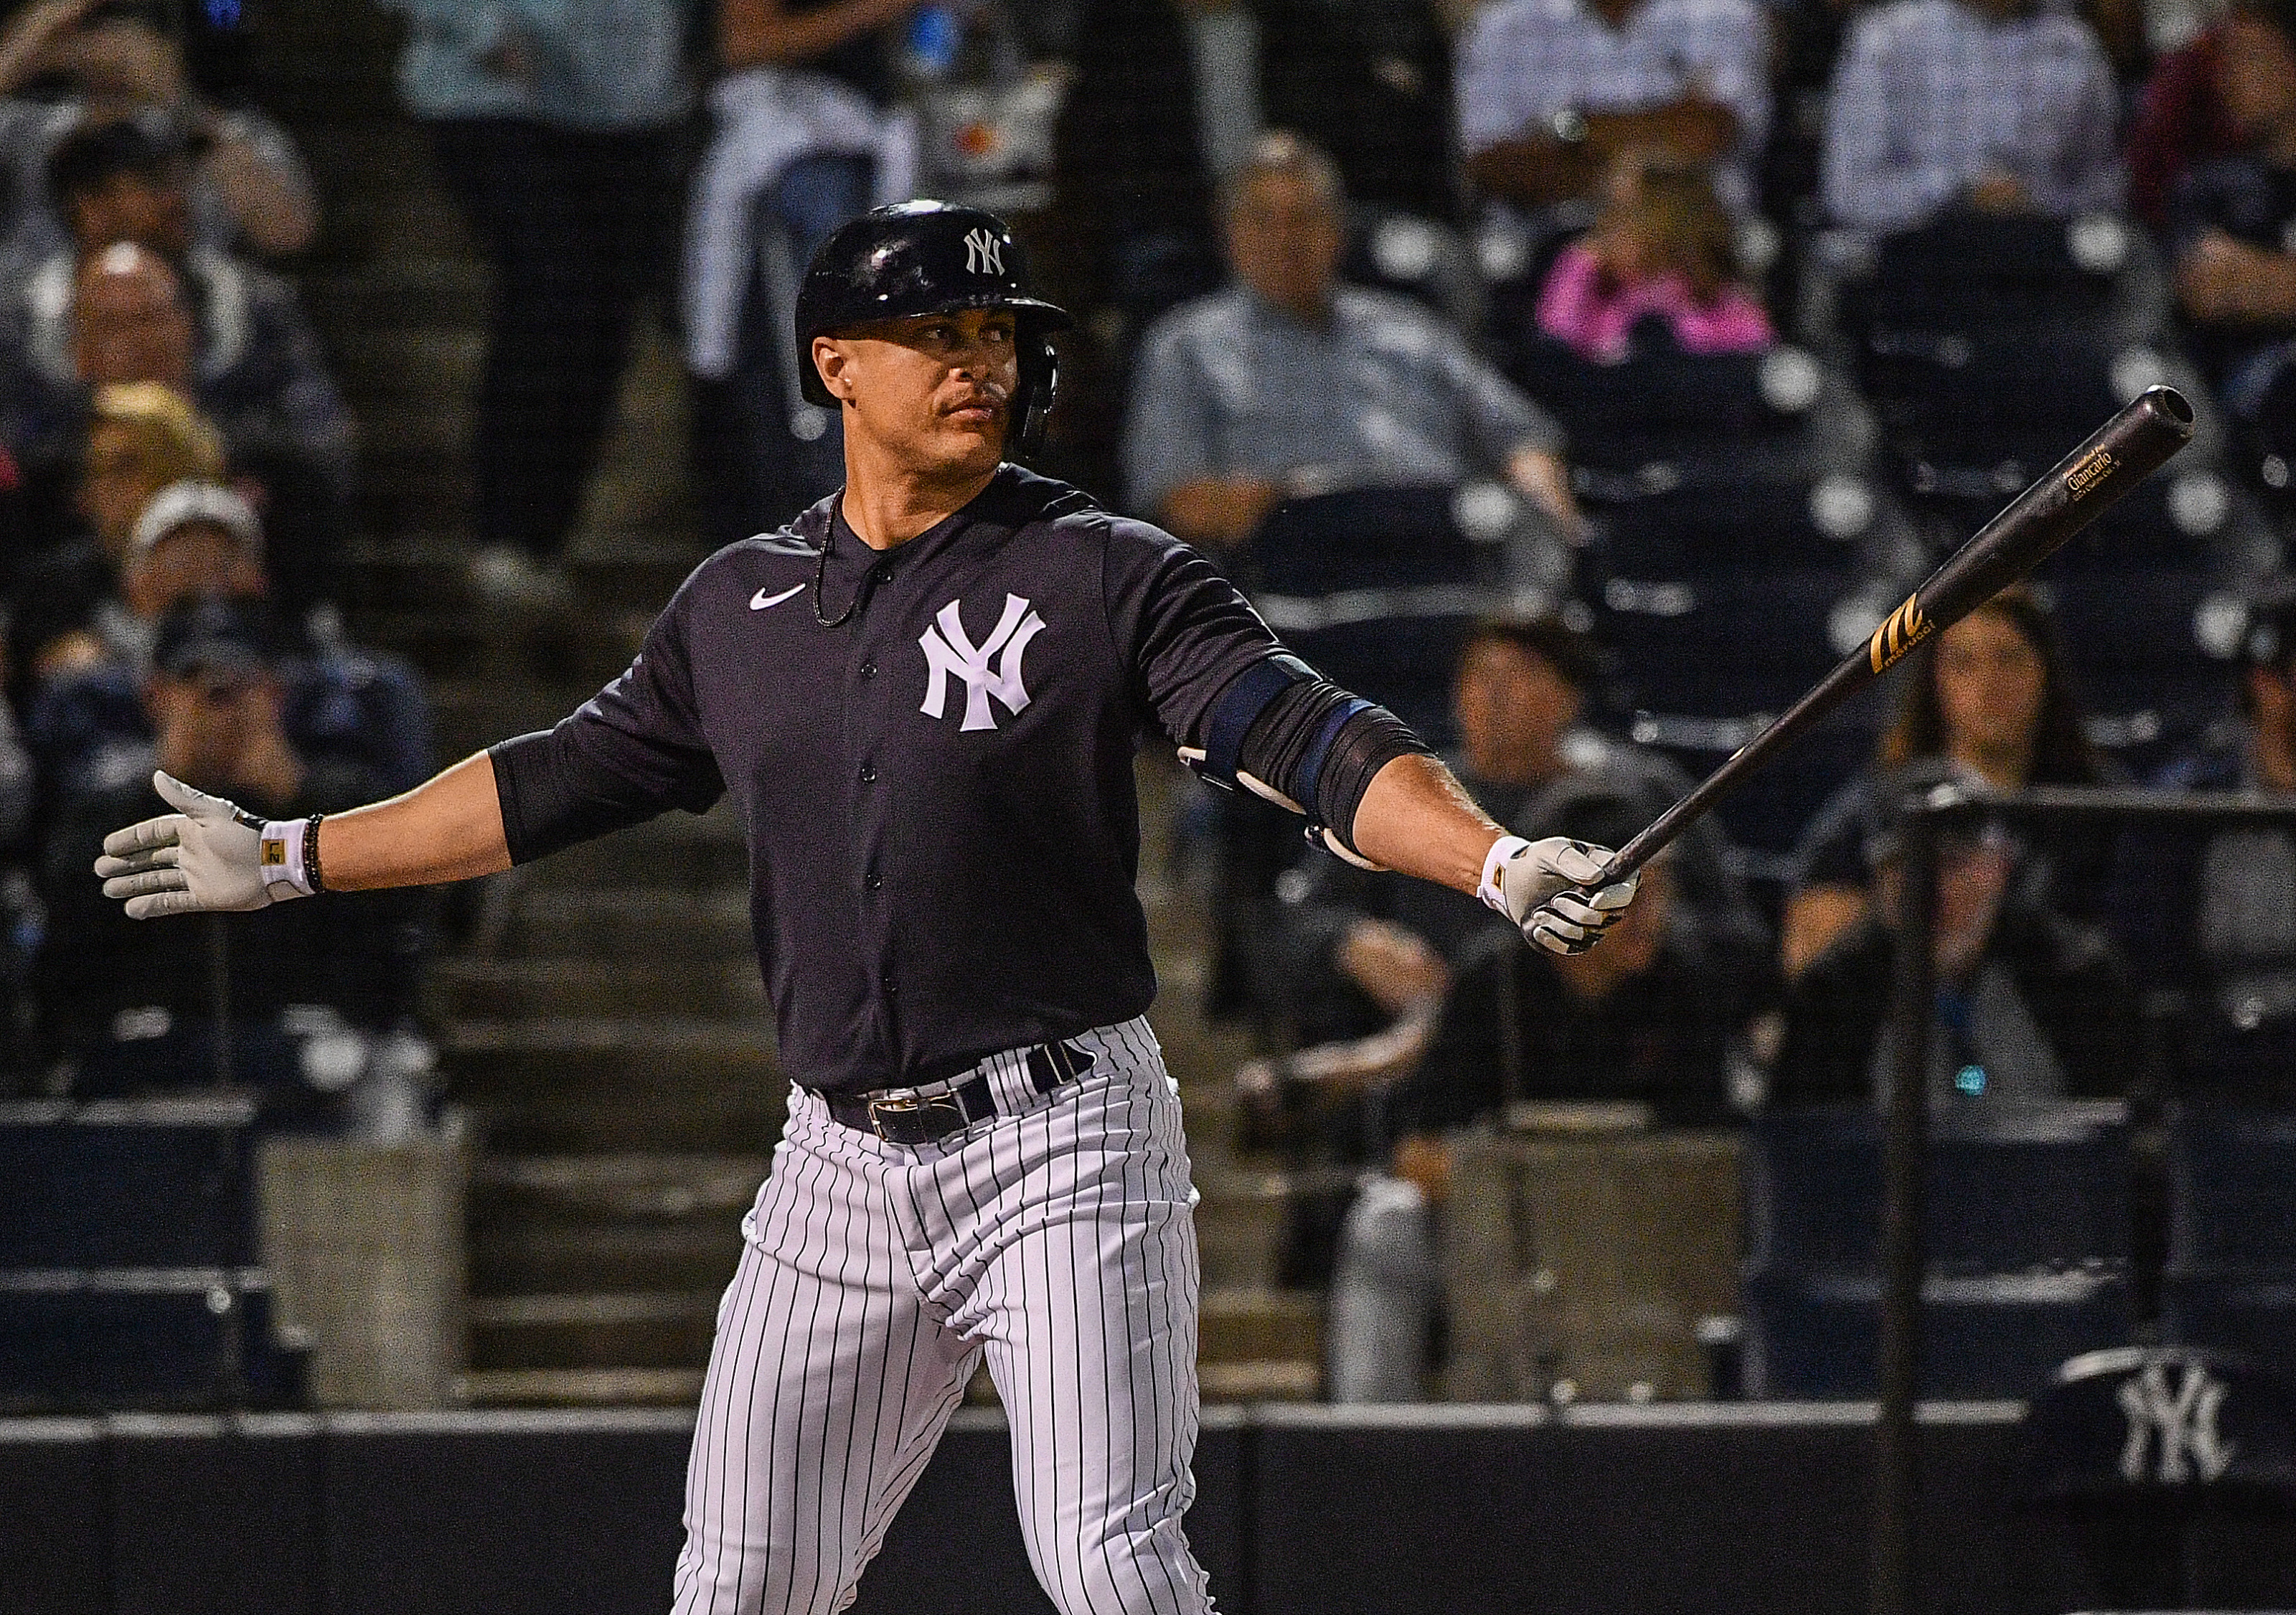 Yankees injury bug is due to having a lot of injury-prone players